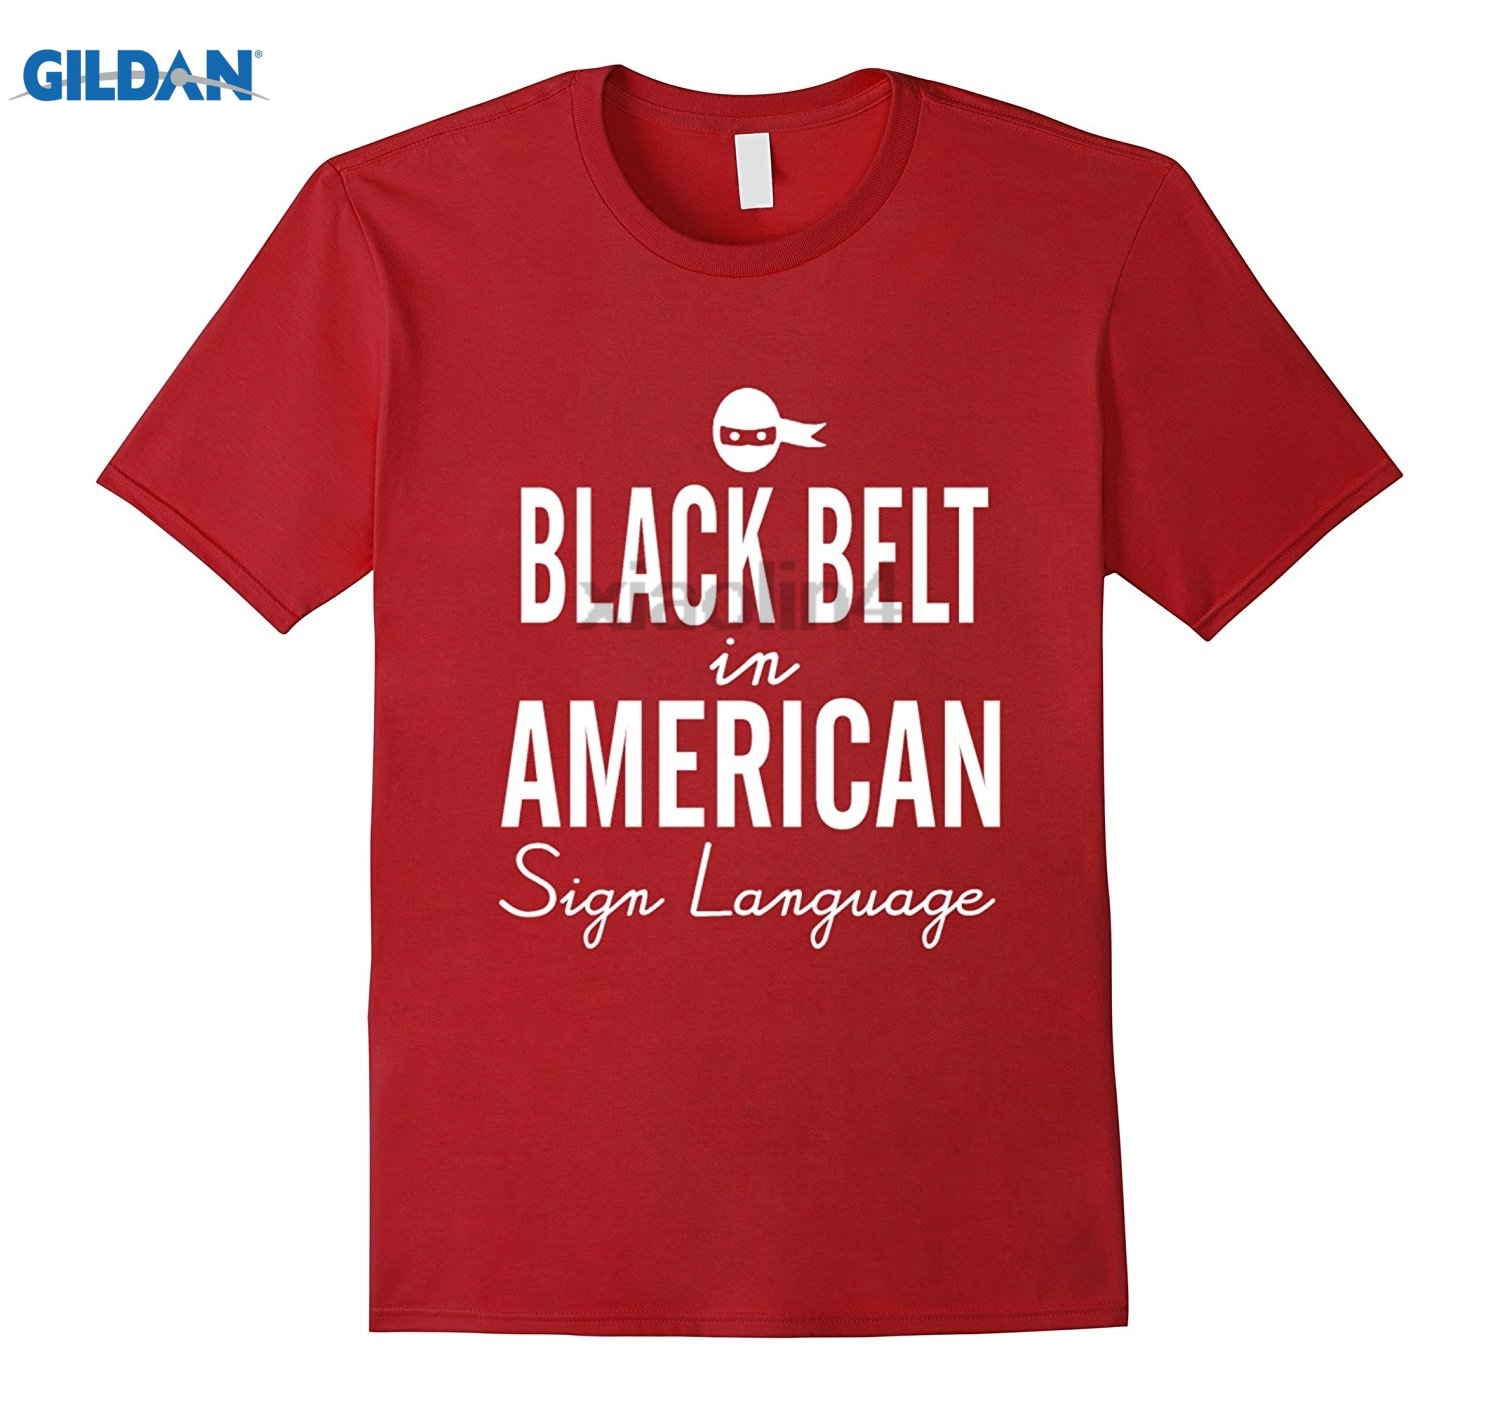 GILDAN Black Belt In American Sign Language Judo Karate T-Shirt Original design new T-shirt Dress female T-shirt